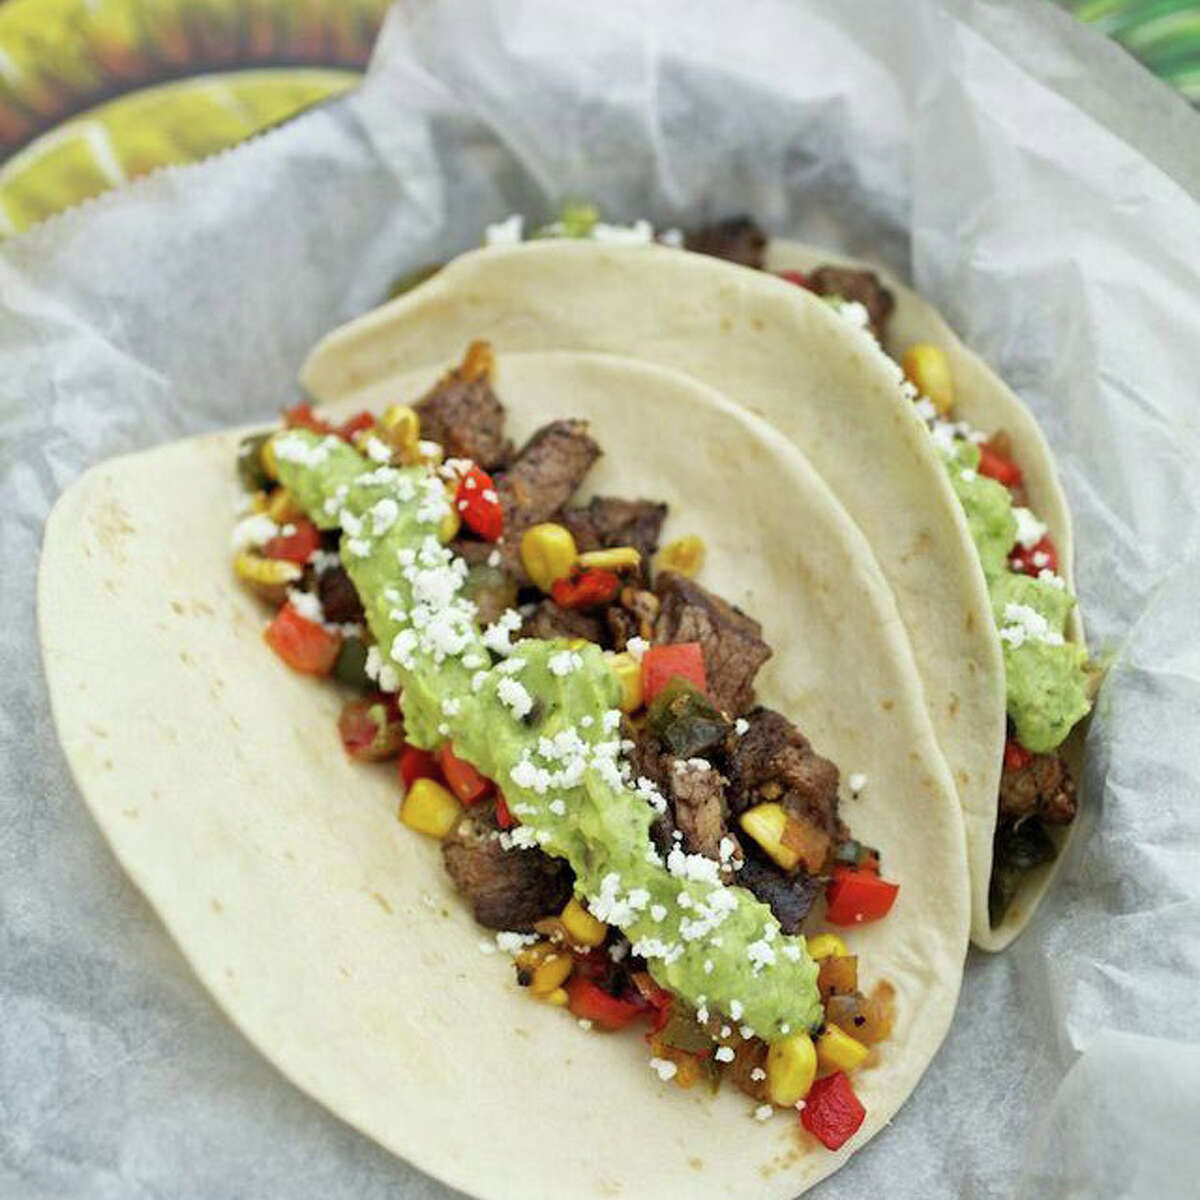 The Cowboy Taco (dry-rubbed beef tenderloin, grilled corn, caramelized onions, roasted peppers, guacamole, and queso fresco) at Tacodeli opening in Houston on April 11.